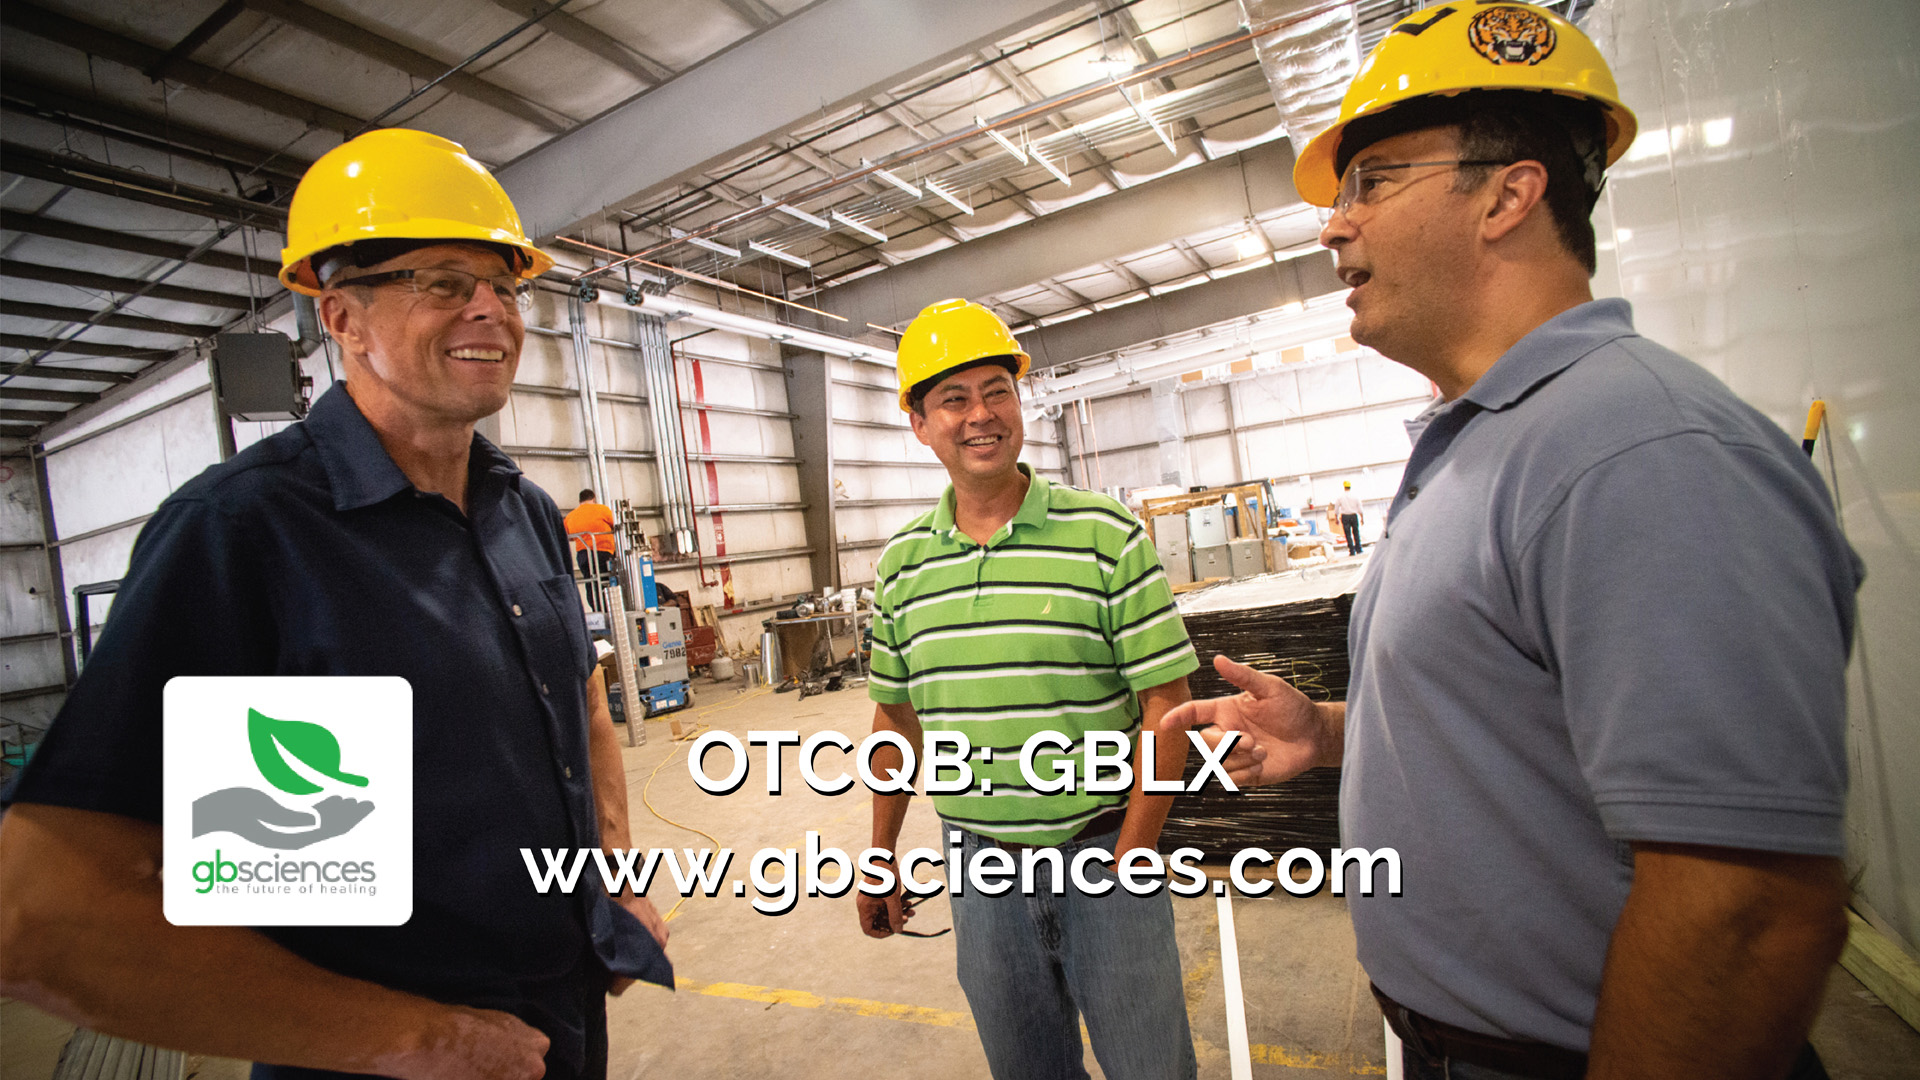 The 36,000 square-foot GB Sciences facility is nearly complete.